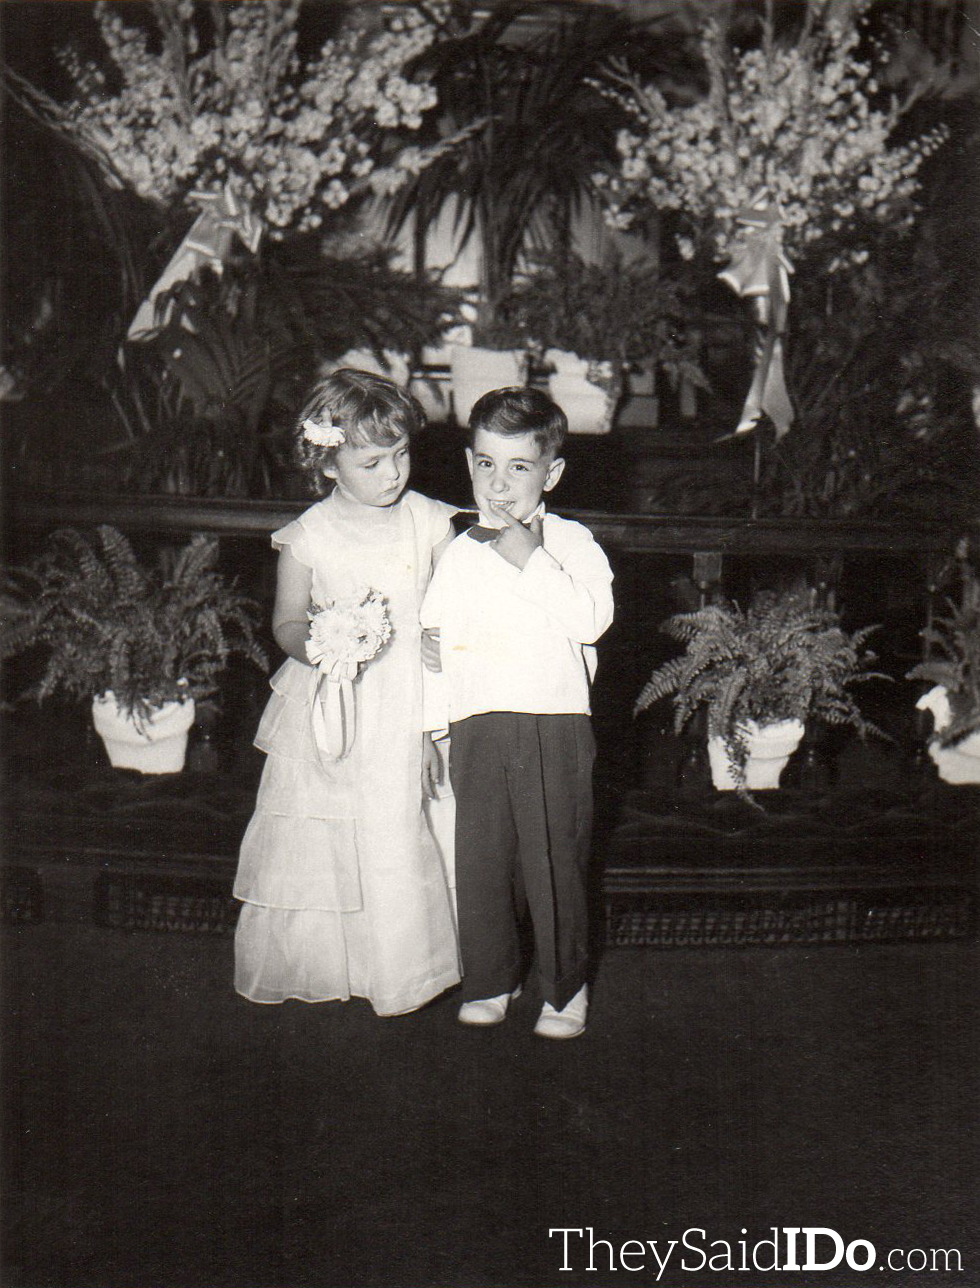 Flower Girl & Ring Bearer - Aren't they adorable?  Lansing, MI 1951 {TheySaidIDo.com}